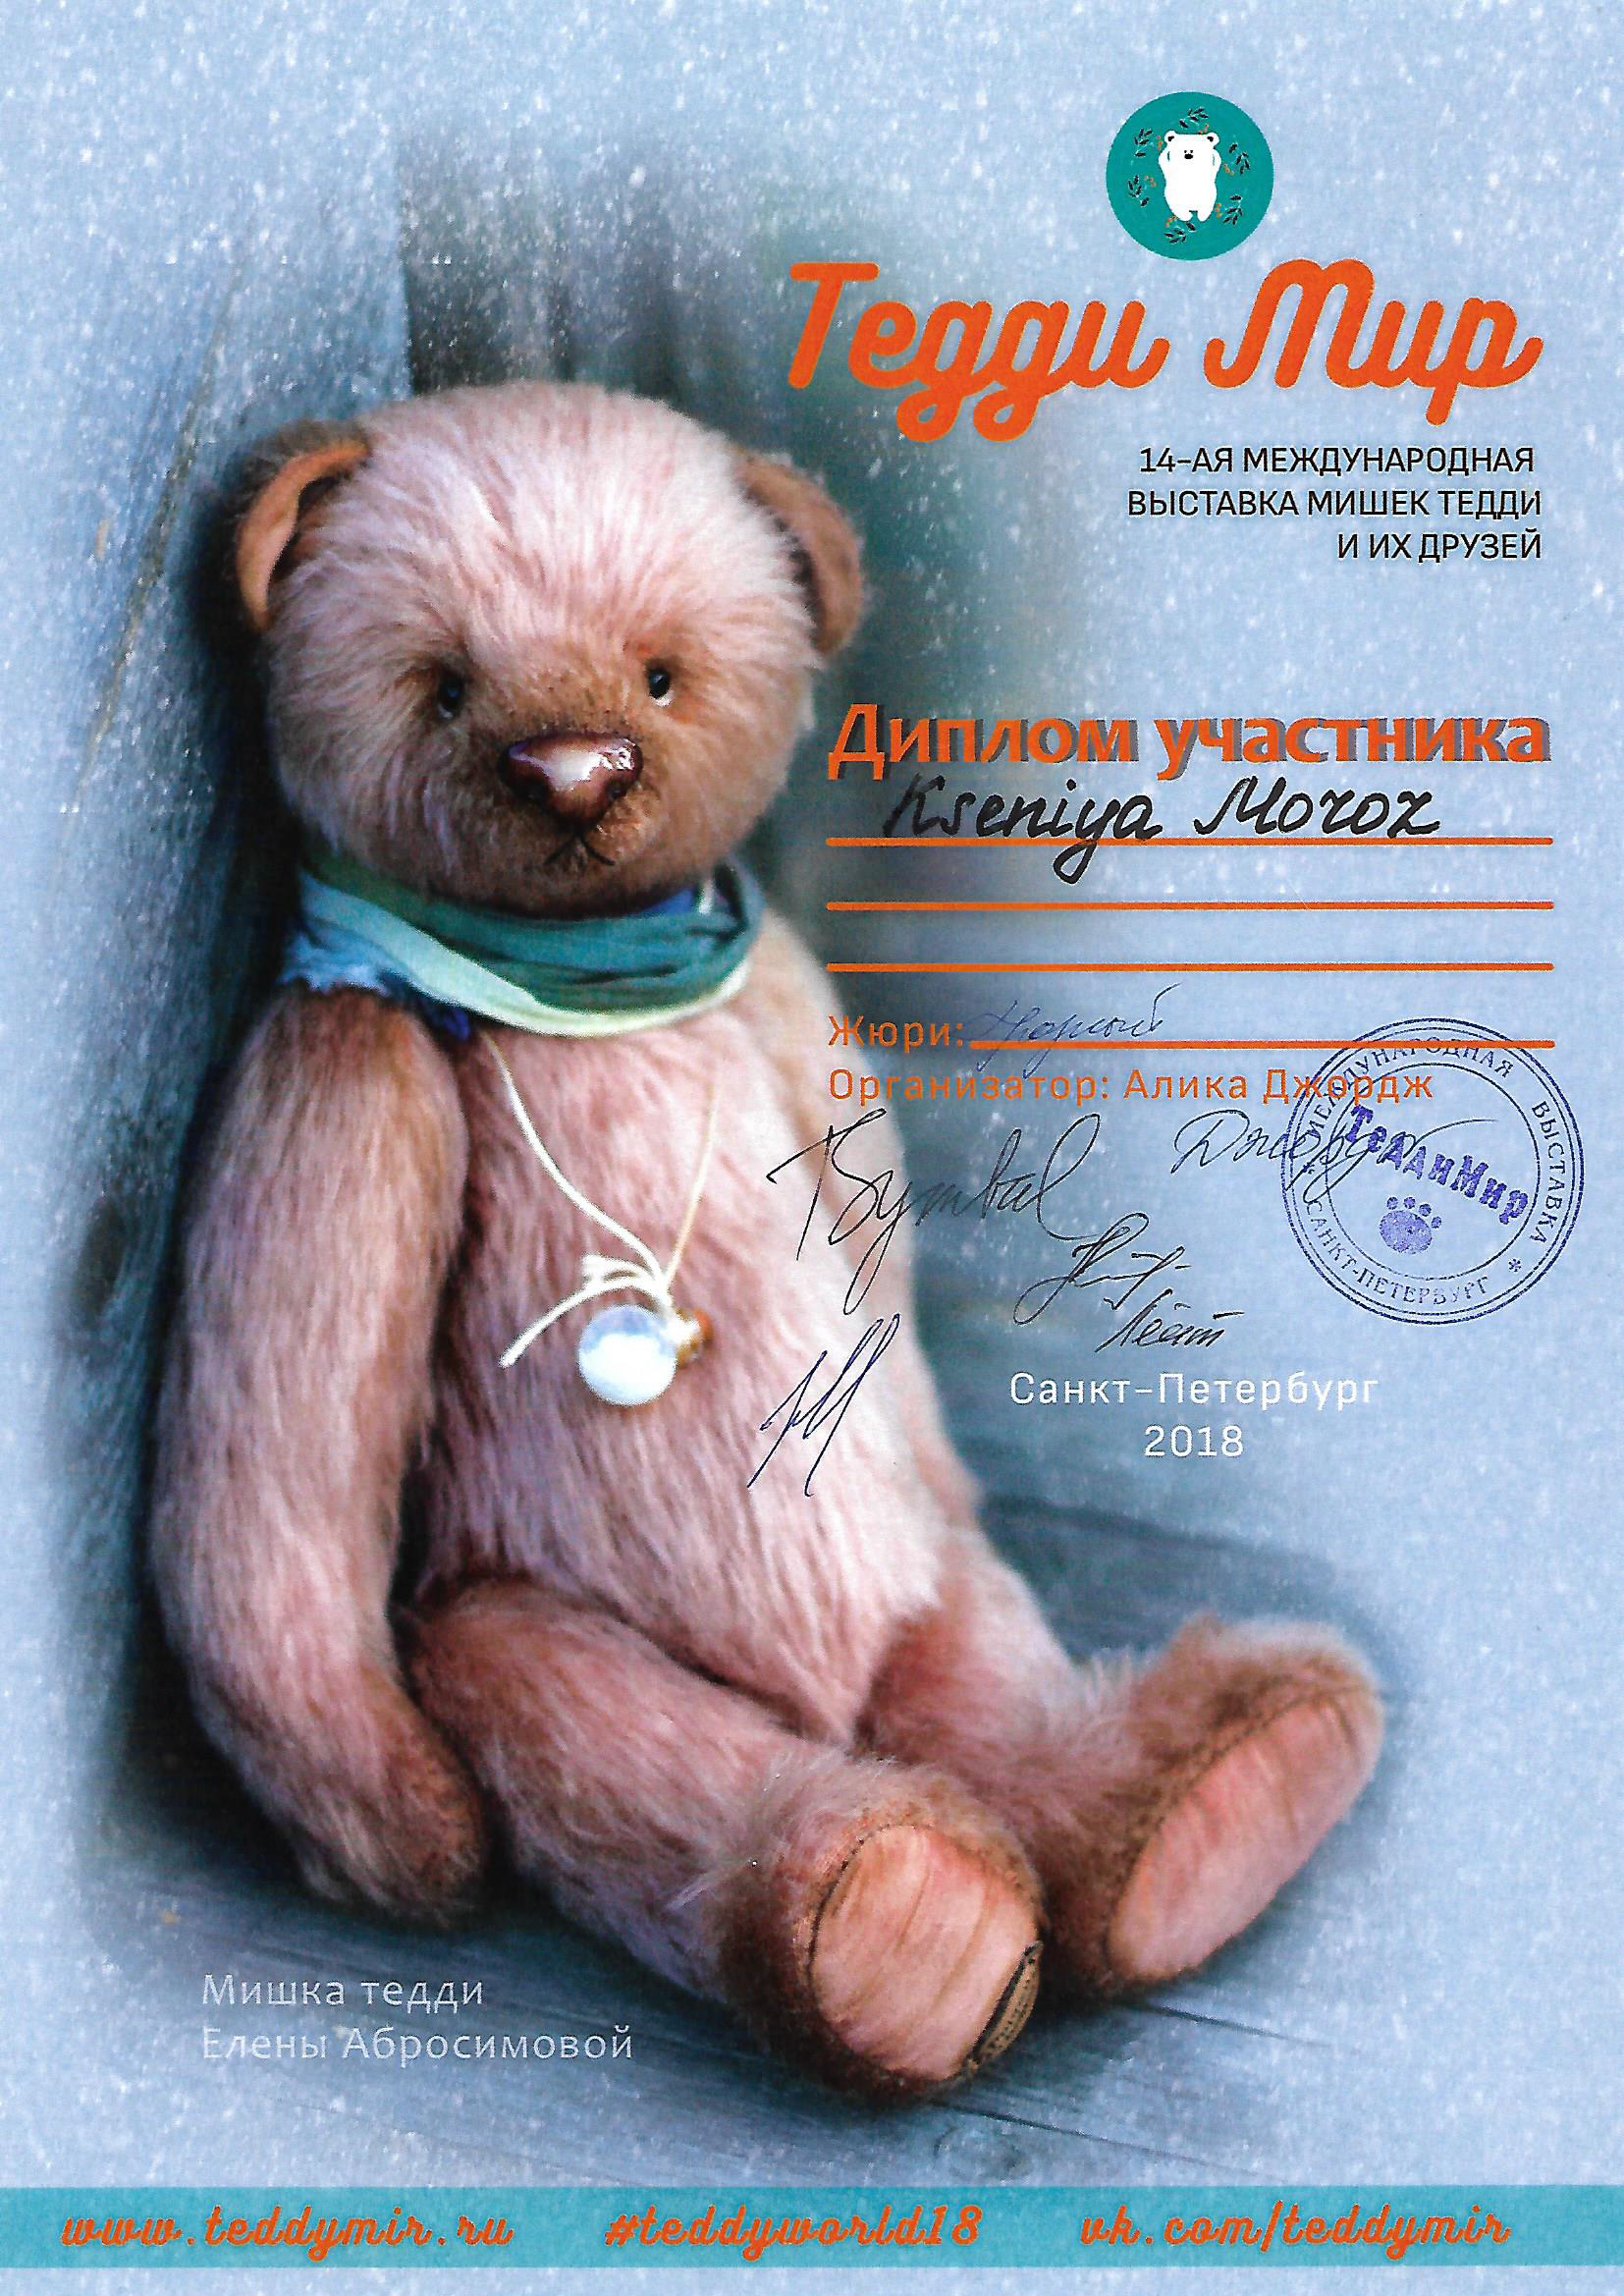 Teddy World 2018/2 /S.-Petersburg